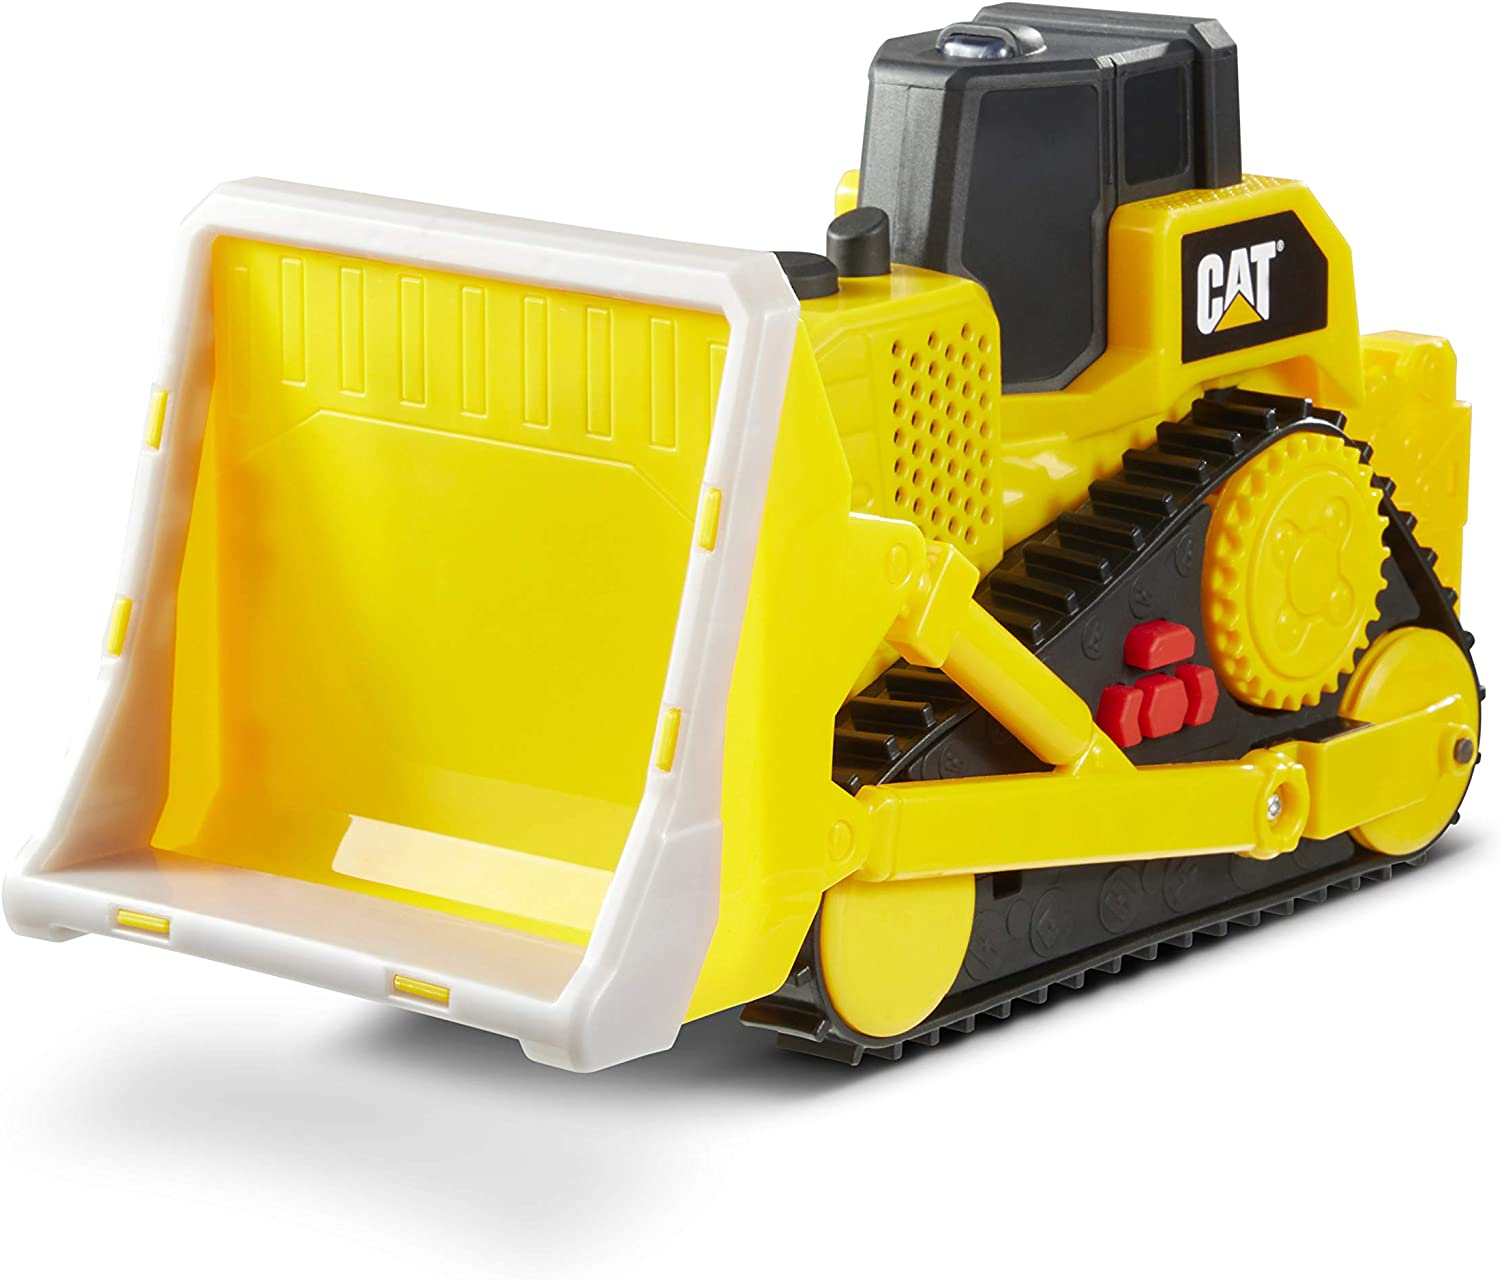 Cat Construction Tough Machines Toy Bulldozer